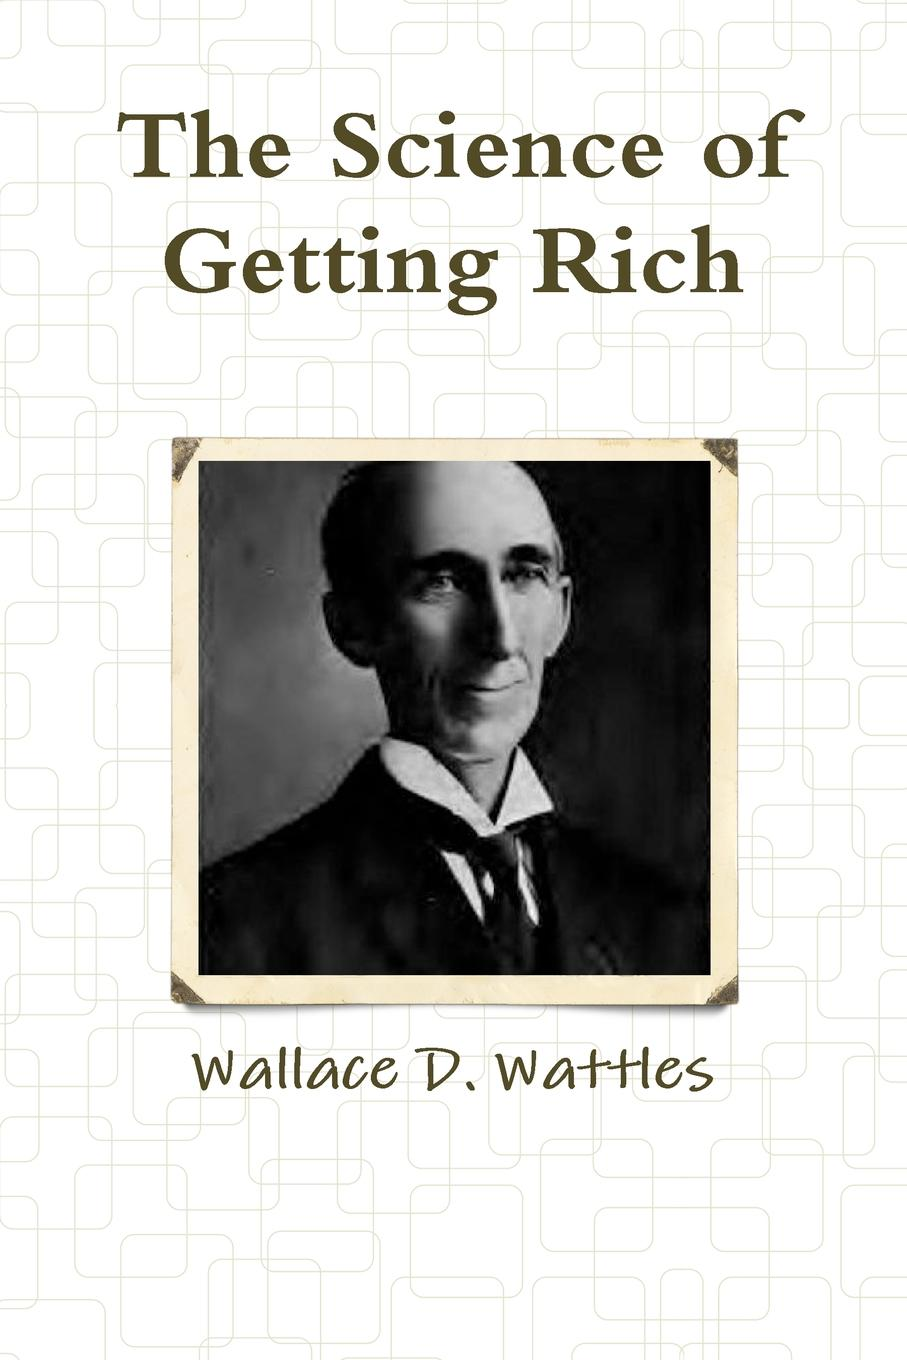 Wallace D. Wattles The Science of Getting Rich fergus o connell earn more stress less how to attract wealth using the secret science of getting rich your practical guide to living the law of attraction